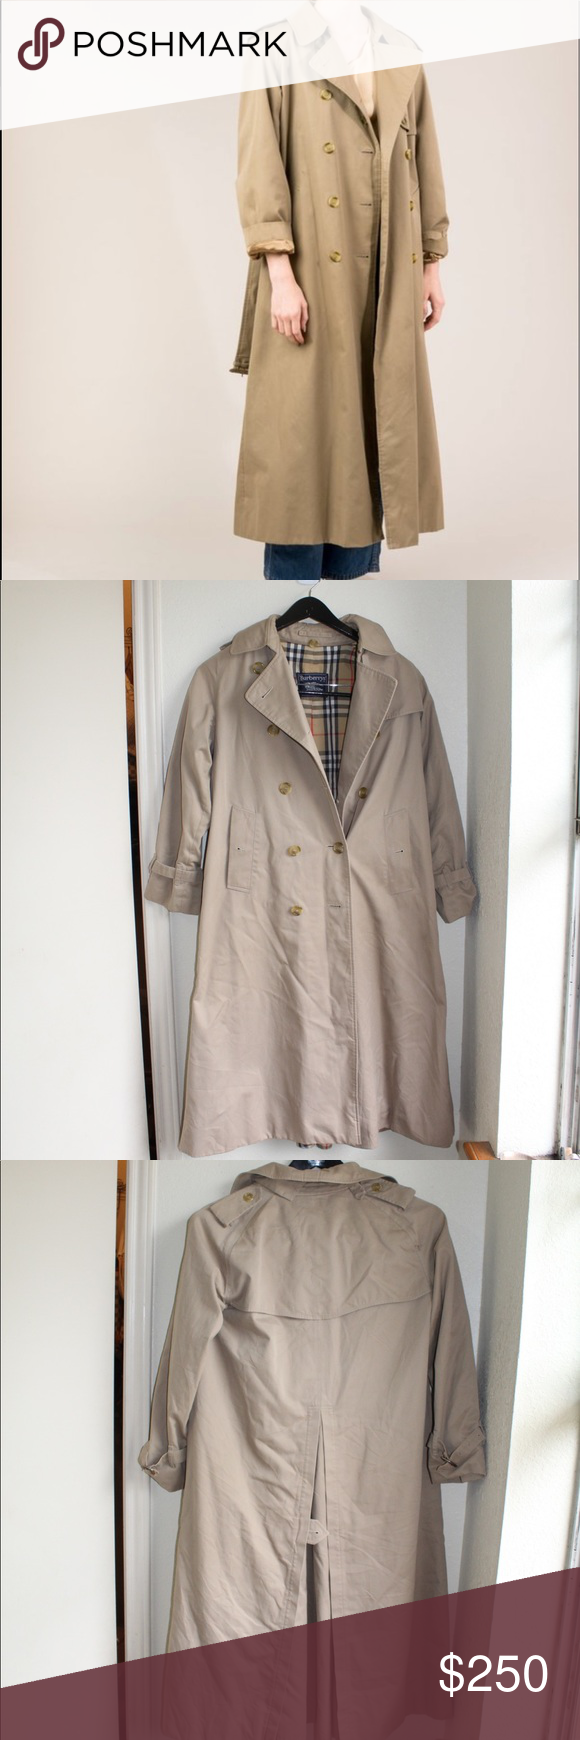 New Listing Burberry Vtg Trench Coat Pre Owned Vintage Burberry Trench Coat Fits A Medium It S An Over Si Trench Coat Clothes Design Burberry Trench Coat